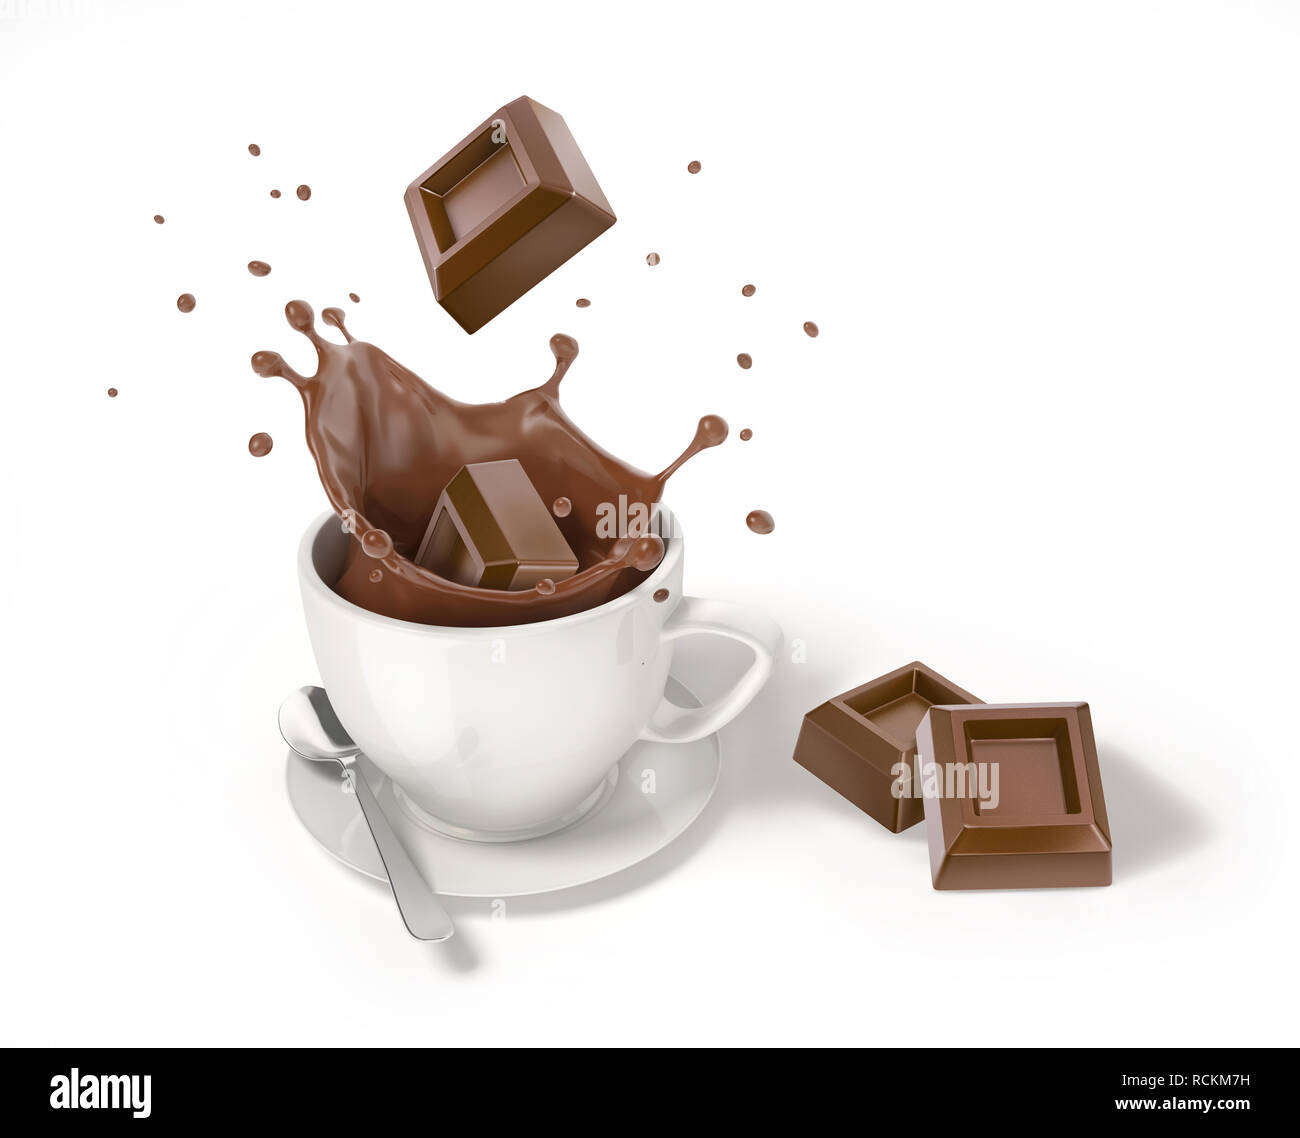 Chocolate cube falling into a white cup with liquid chocolate splash. Two other cubes besides. On white background. - Stock Image